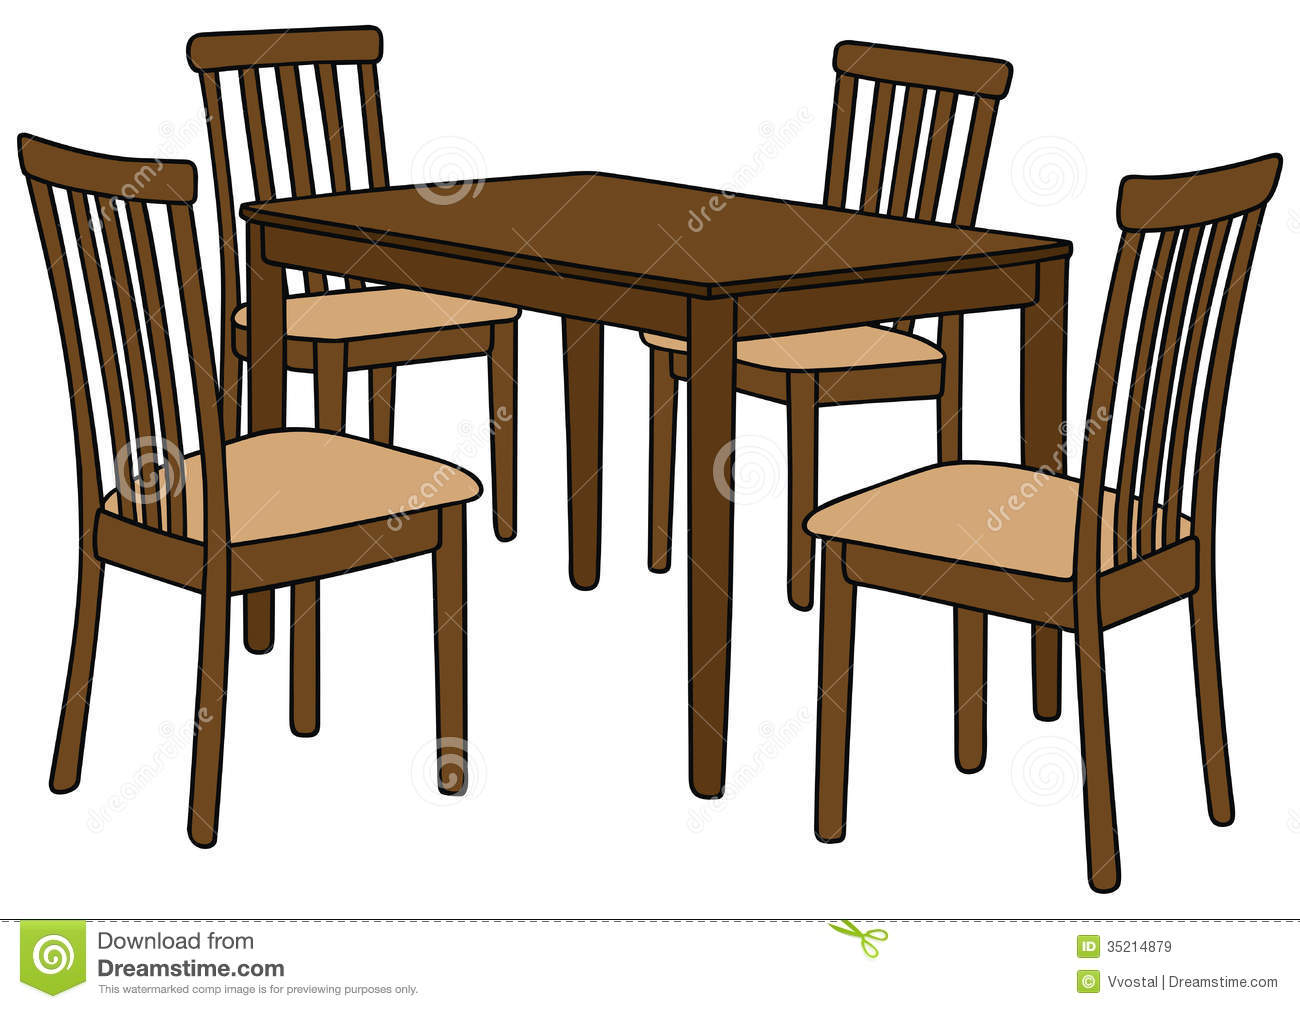 Covered chairs clipart - Clipground